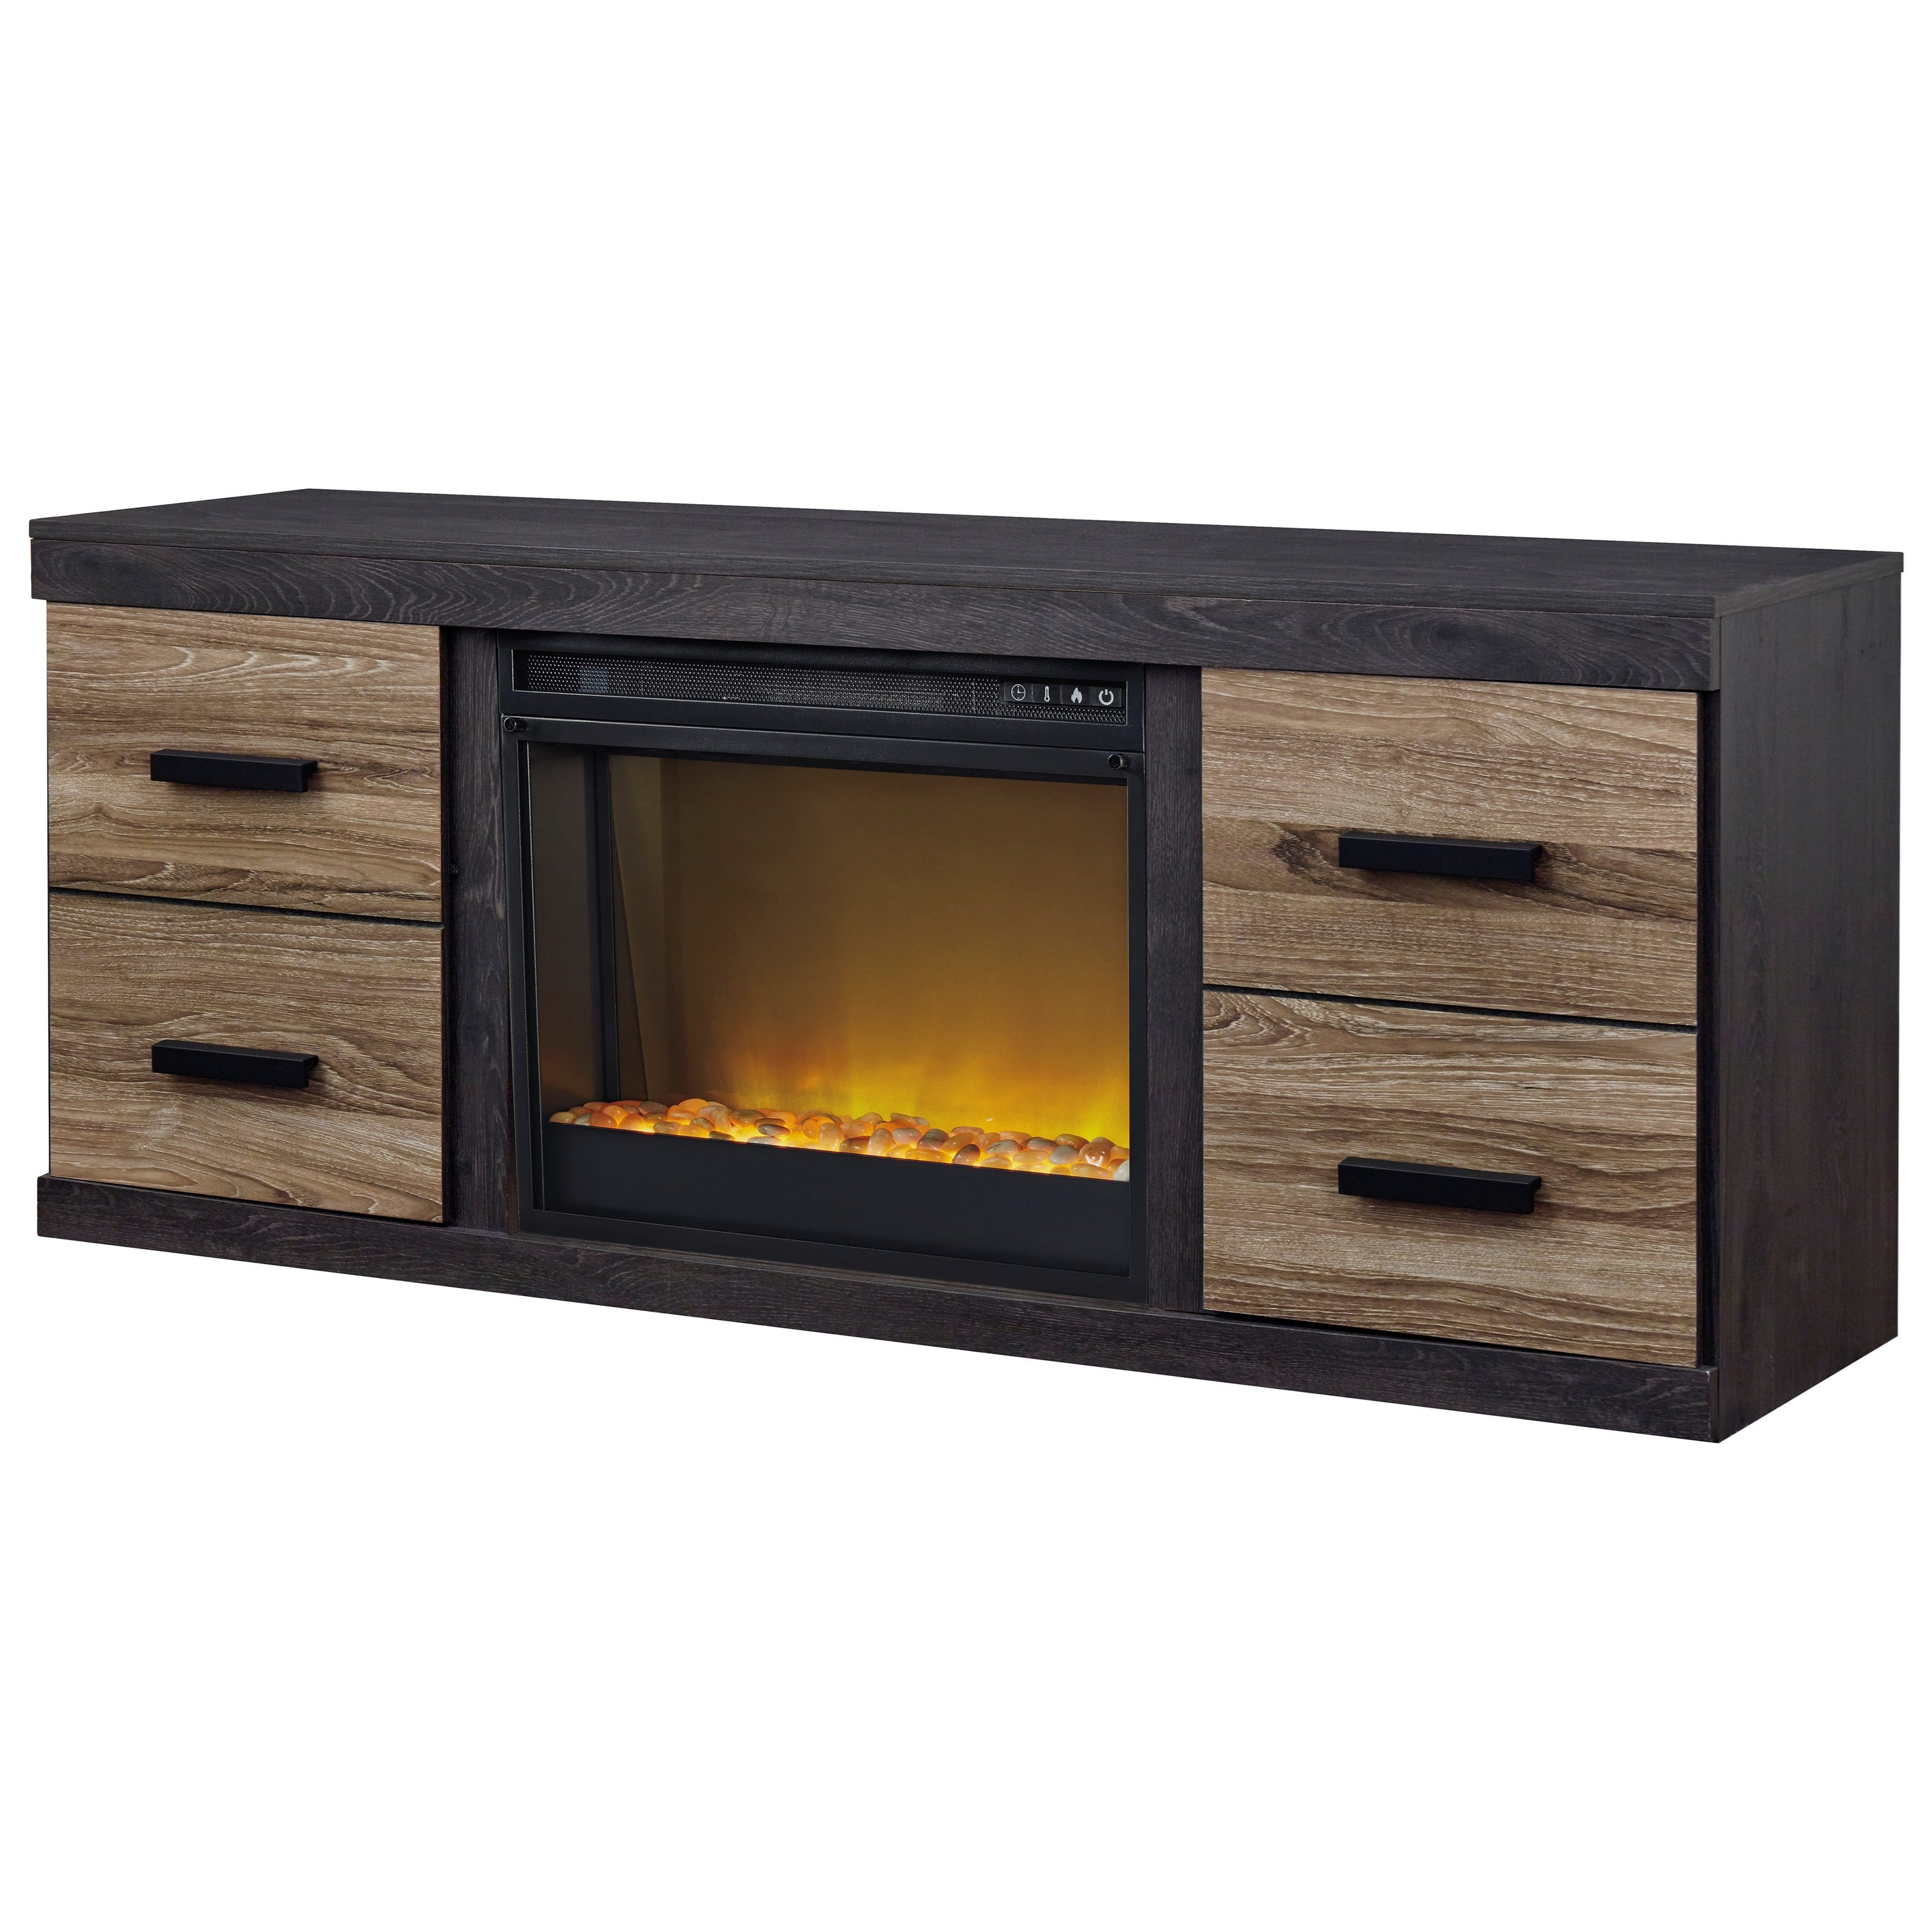 Harlinton Large TV Stand w/ Fireplace Insert by Ashley (Signature Design) at Johnny Janosik